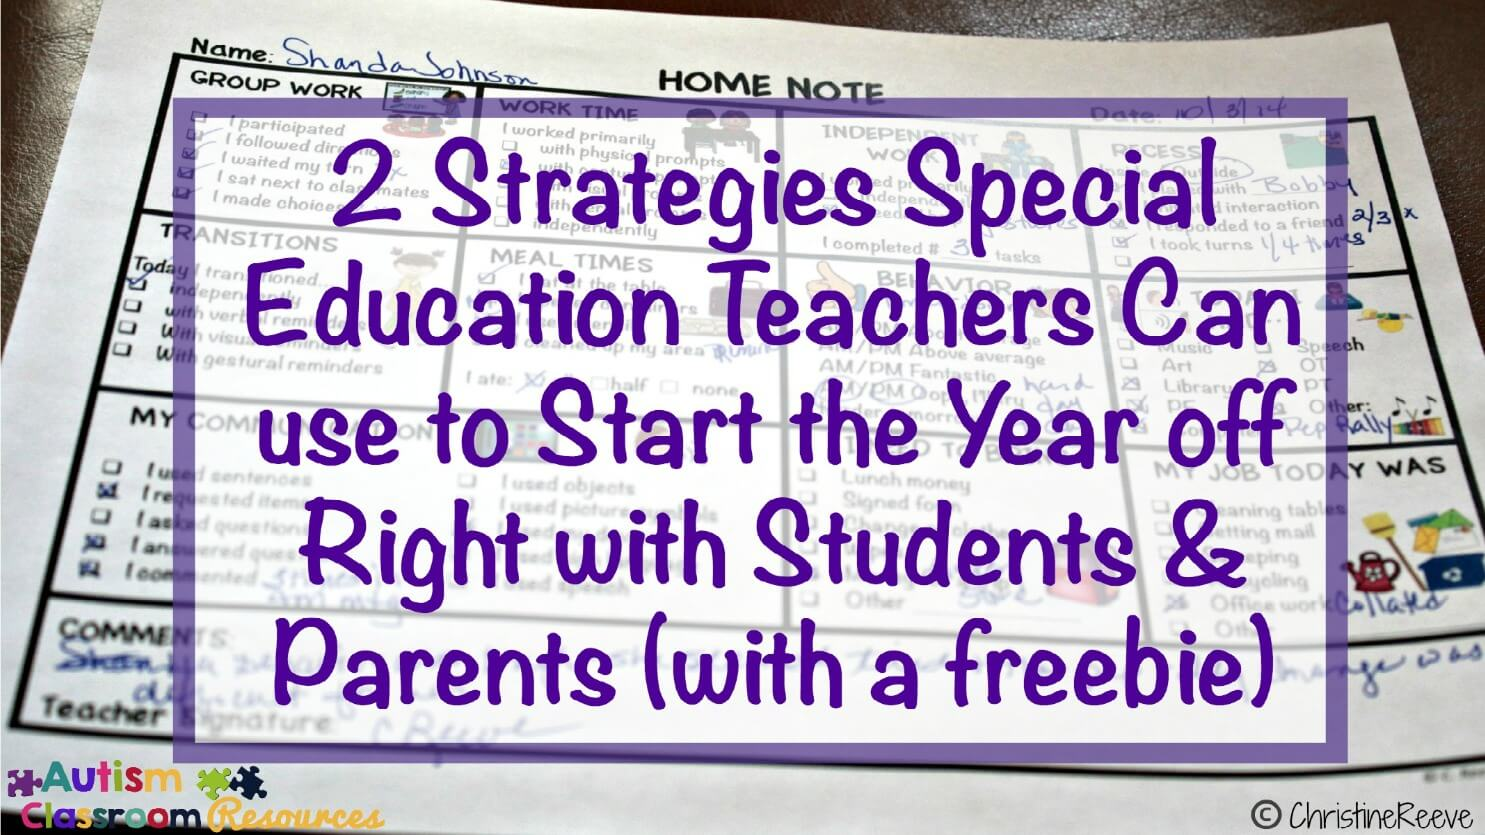 """the change in attitudes of the placement of special education students The effects of inclusion on general education students by bruce pawlowicz  now requires the inclusion of all students with special needs if that placement is the least restrictive environment  there are long-term changes in the attitudes of educational professionals"""" (winzer, 1998, p 2)."""